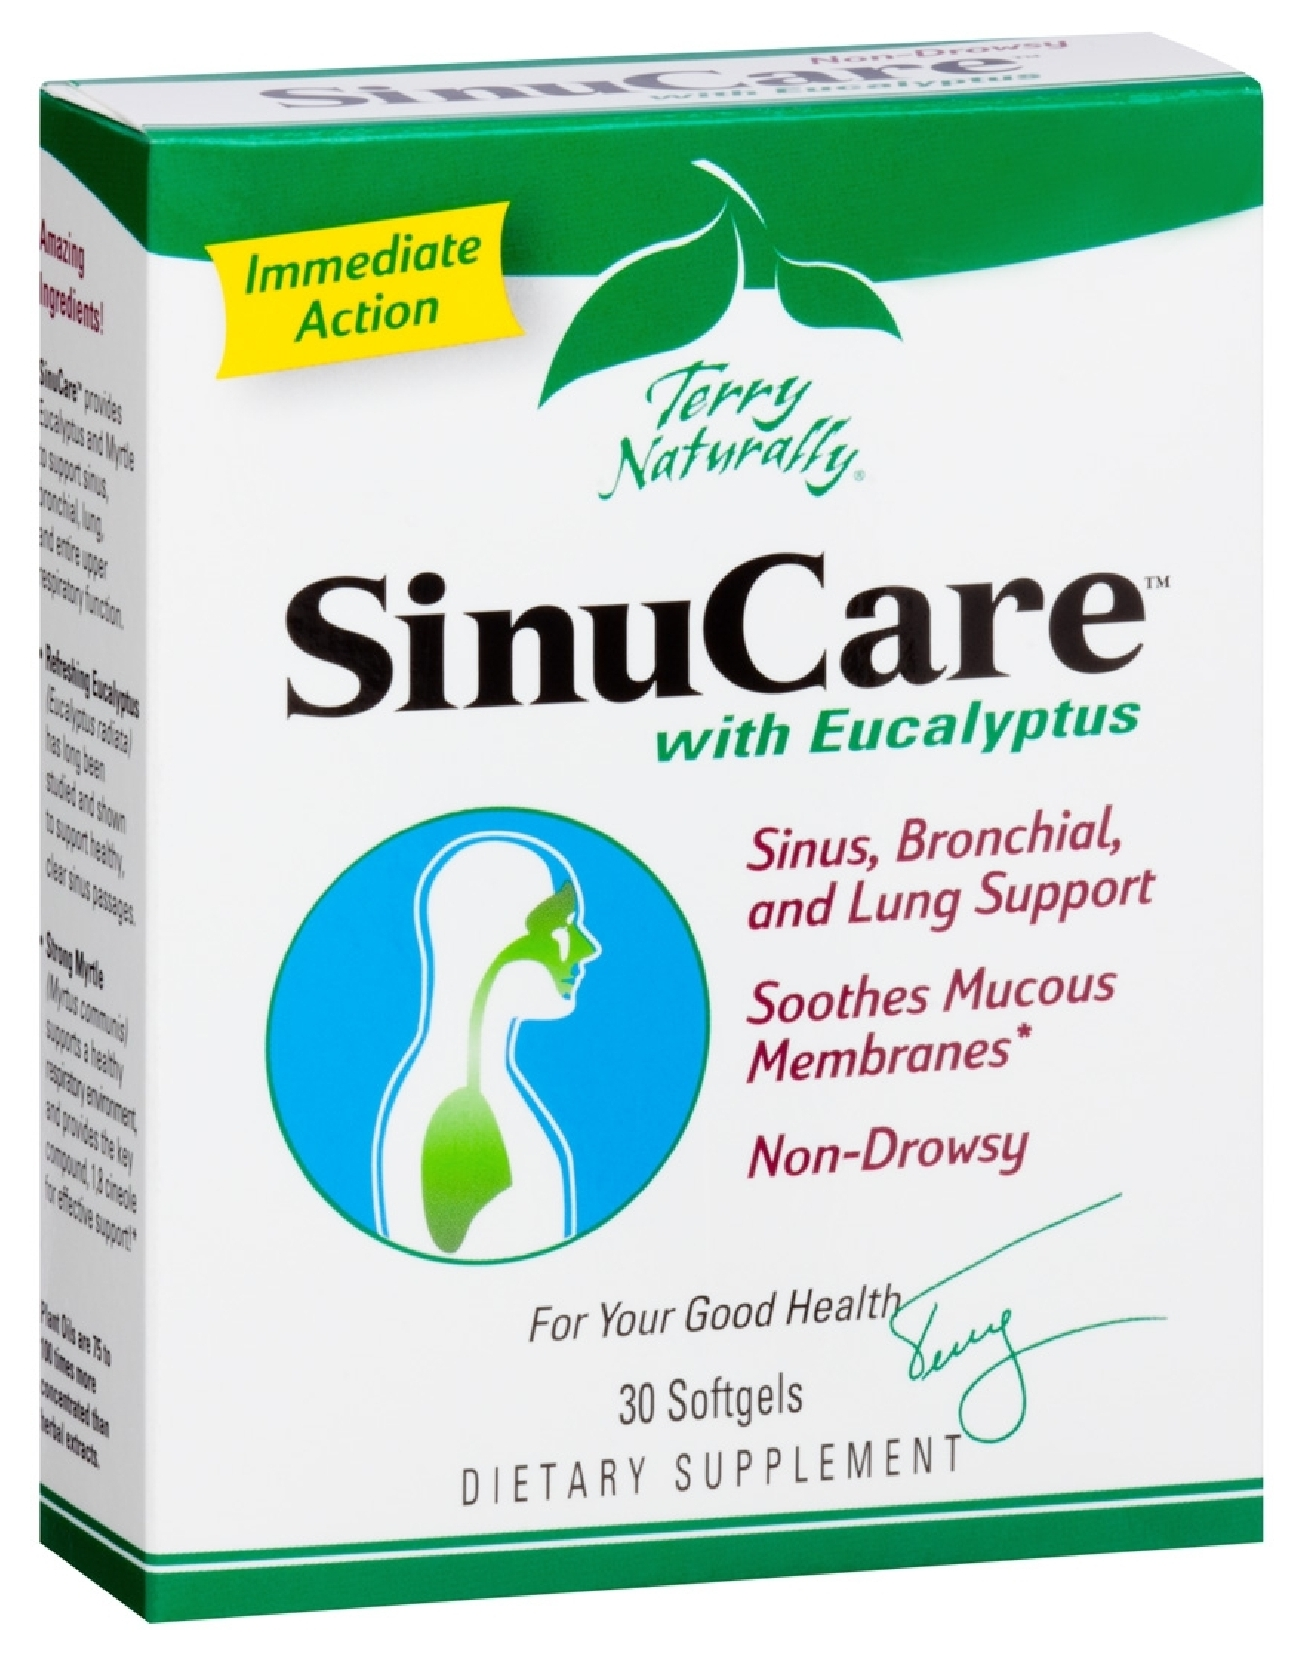 Terry Naturally SinuCare 30 sgels by EuroPharma